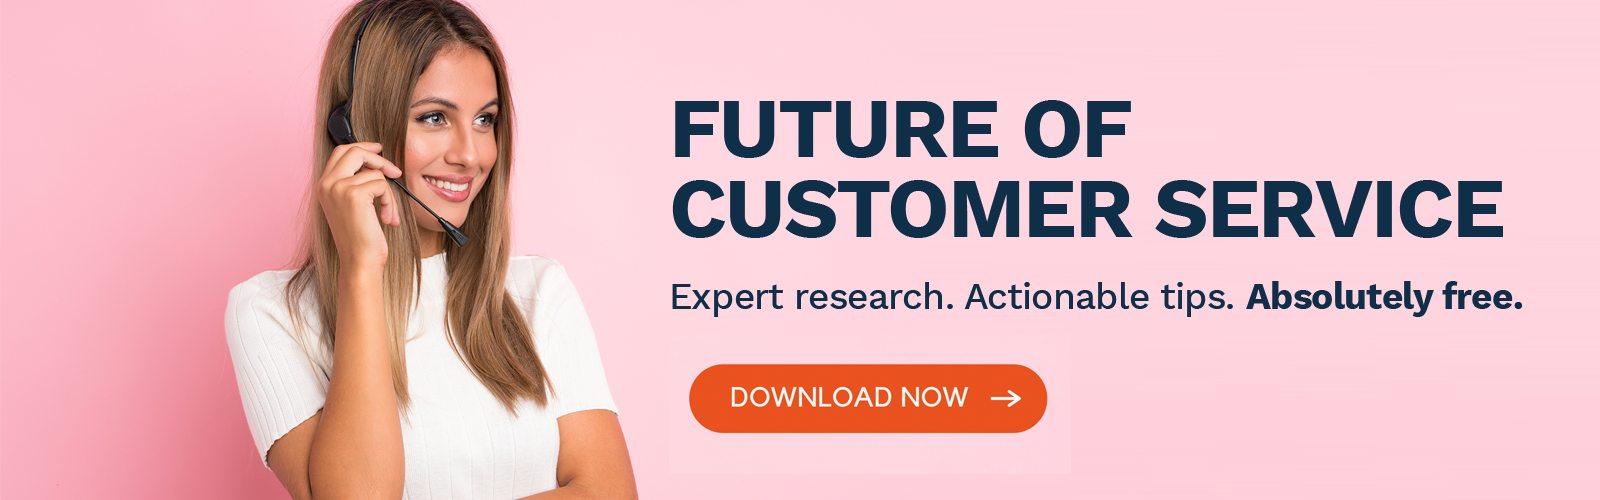 Download-future-of-customer-service